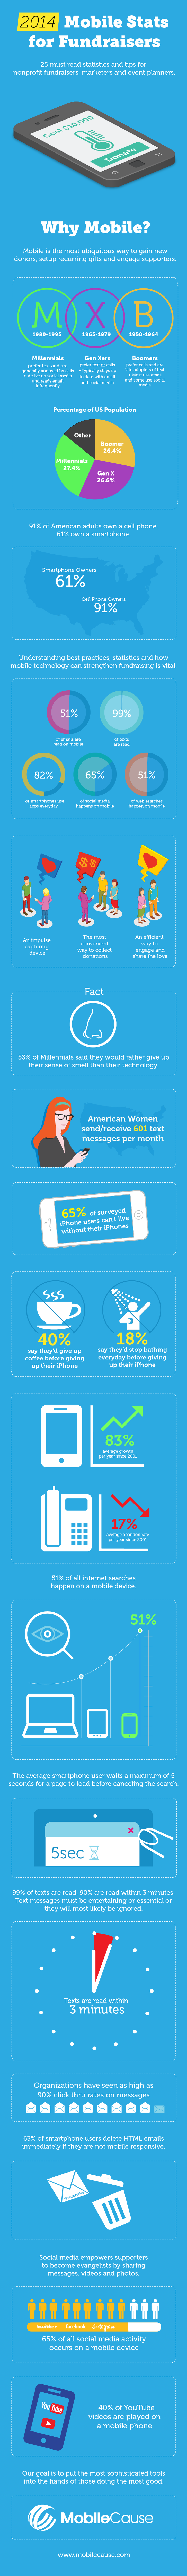 Mobile Fundraising Facts